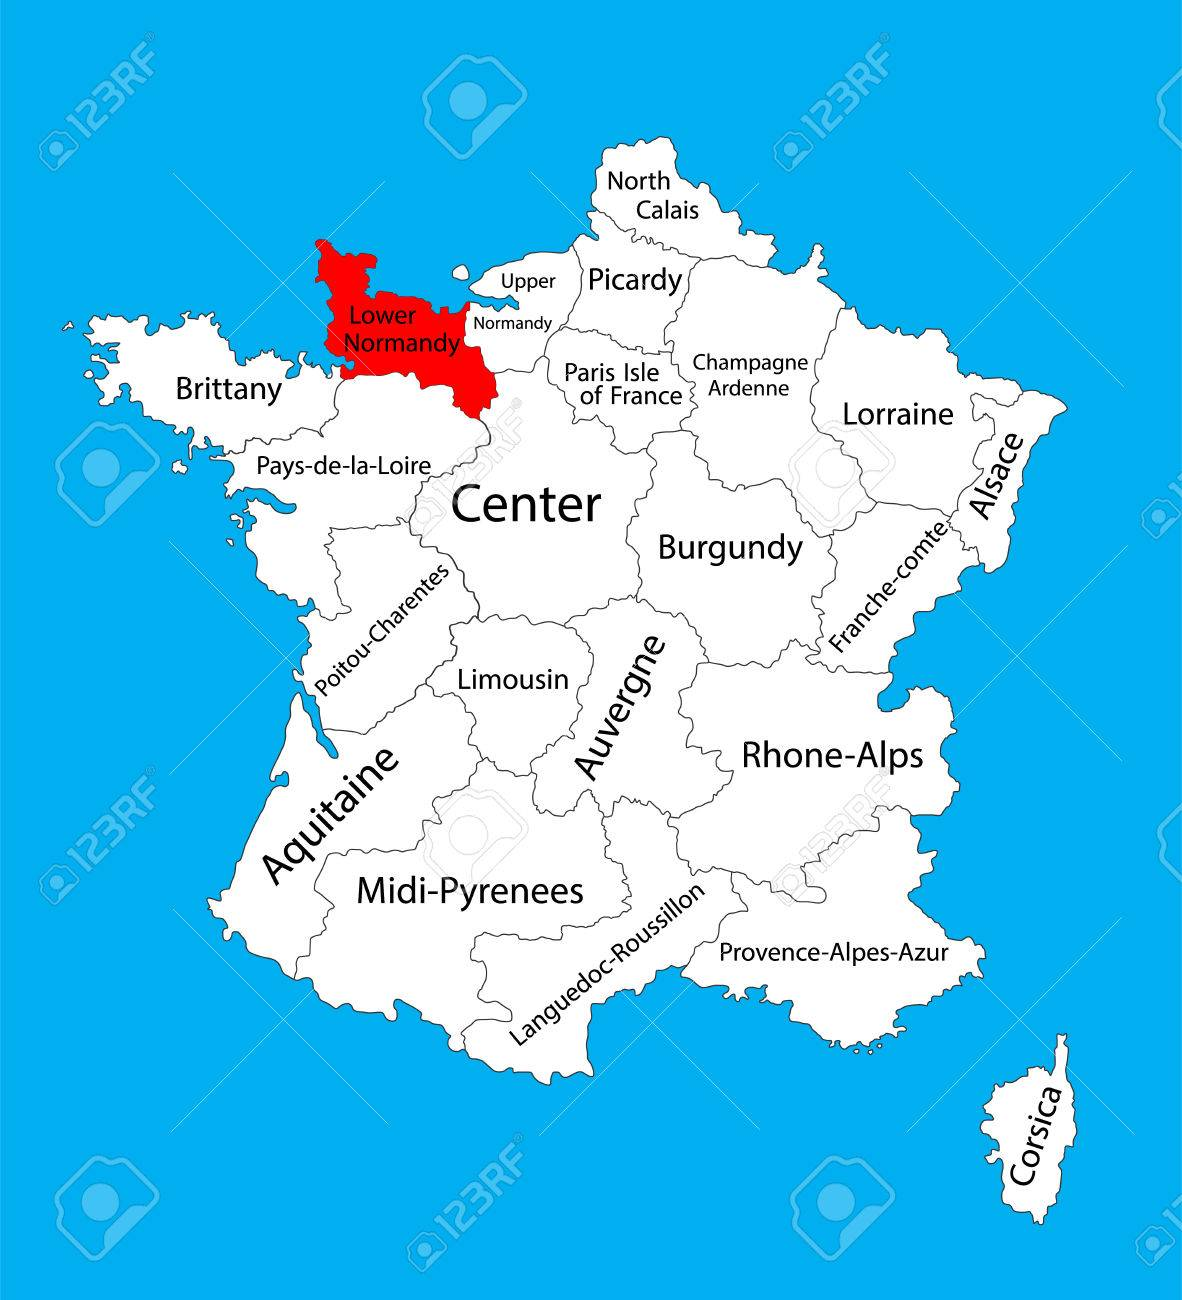 Map Of Normandy France Detailed.Vector Map Of State Lower Normandy Location On France France